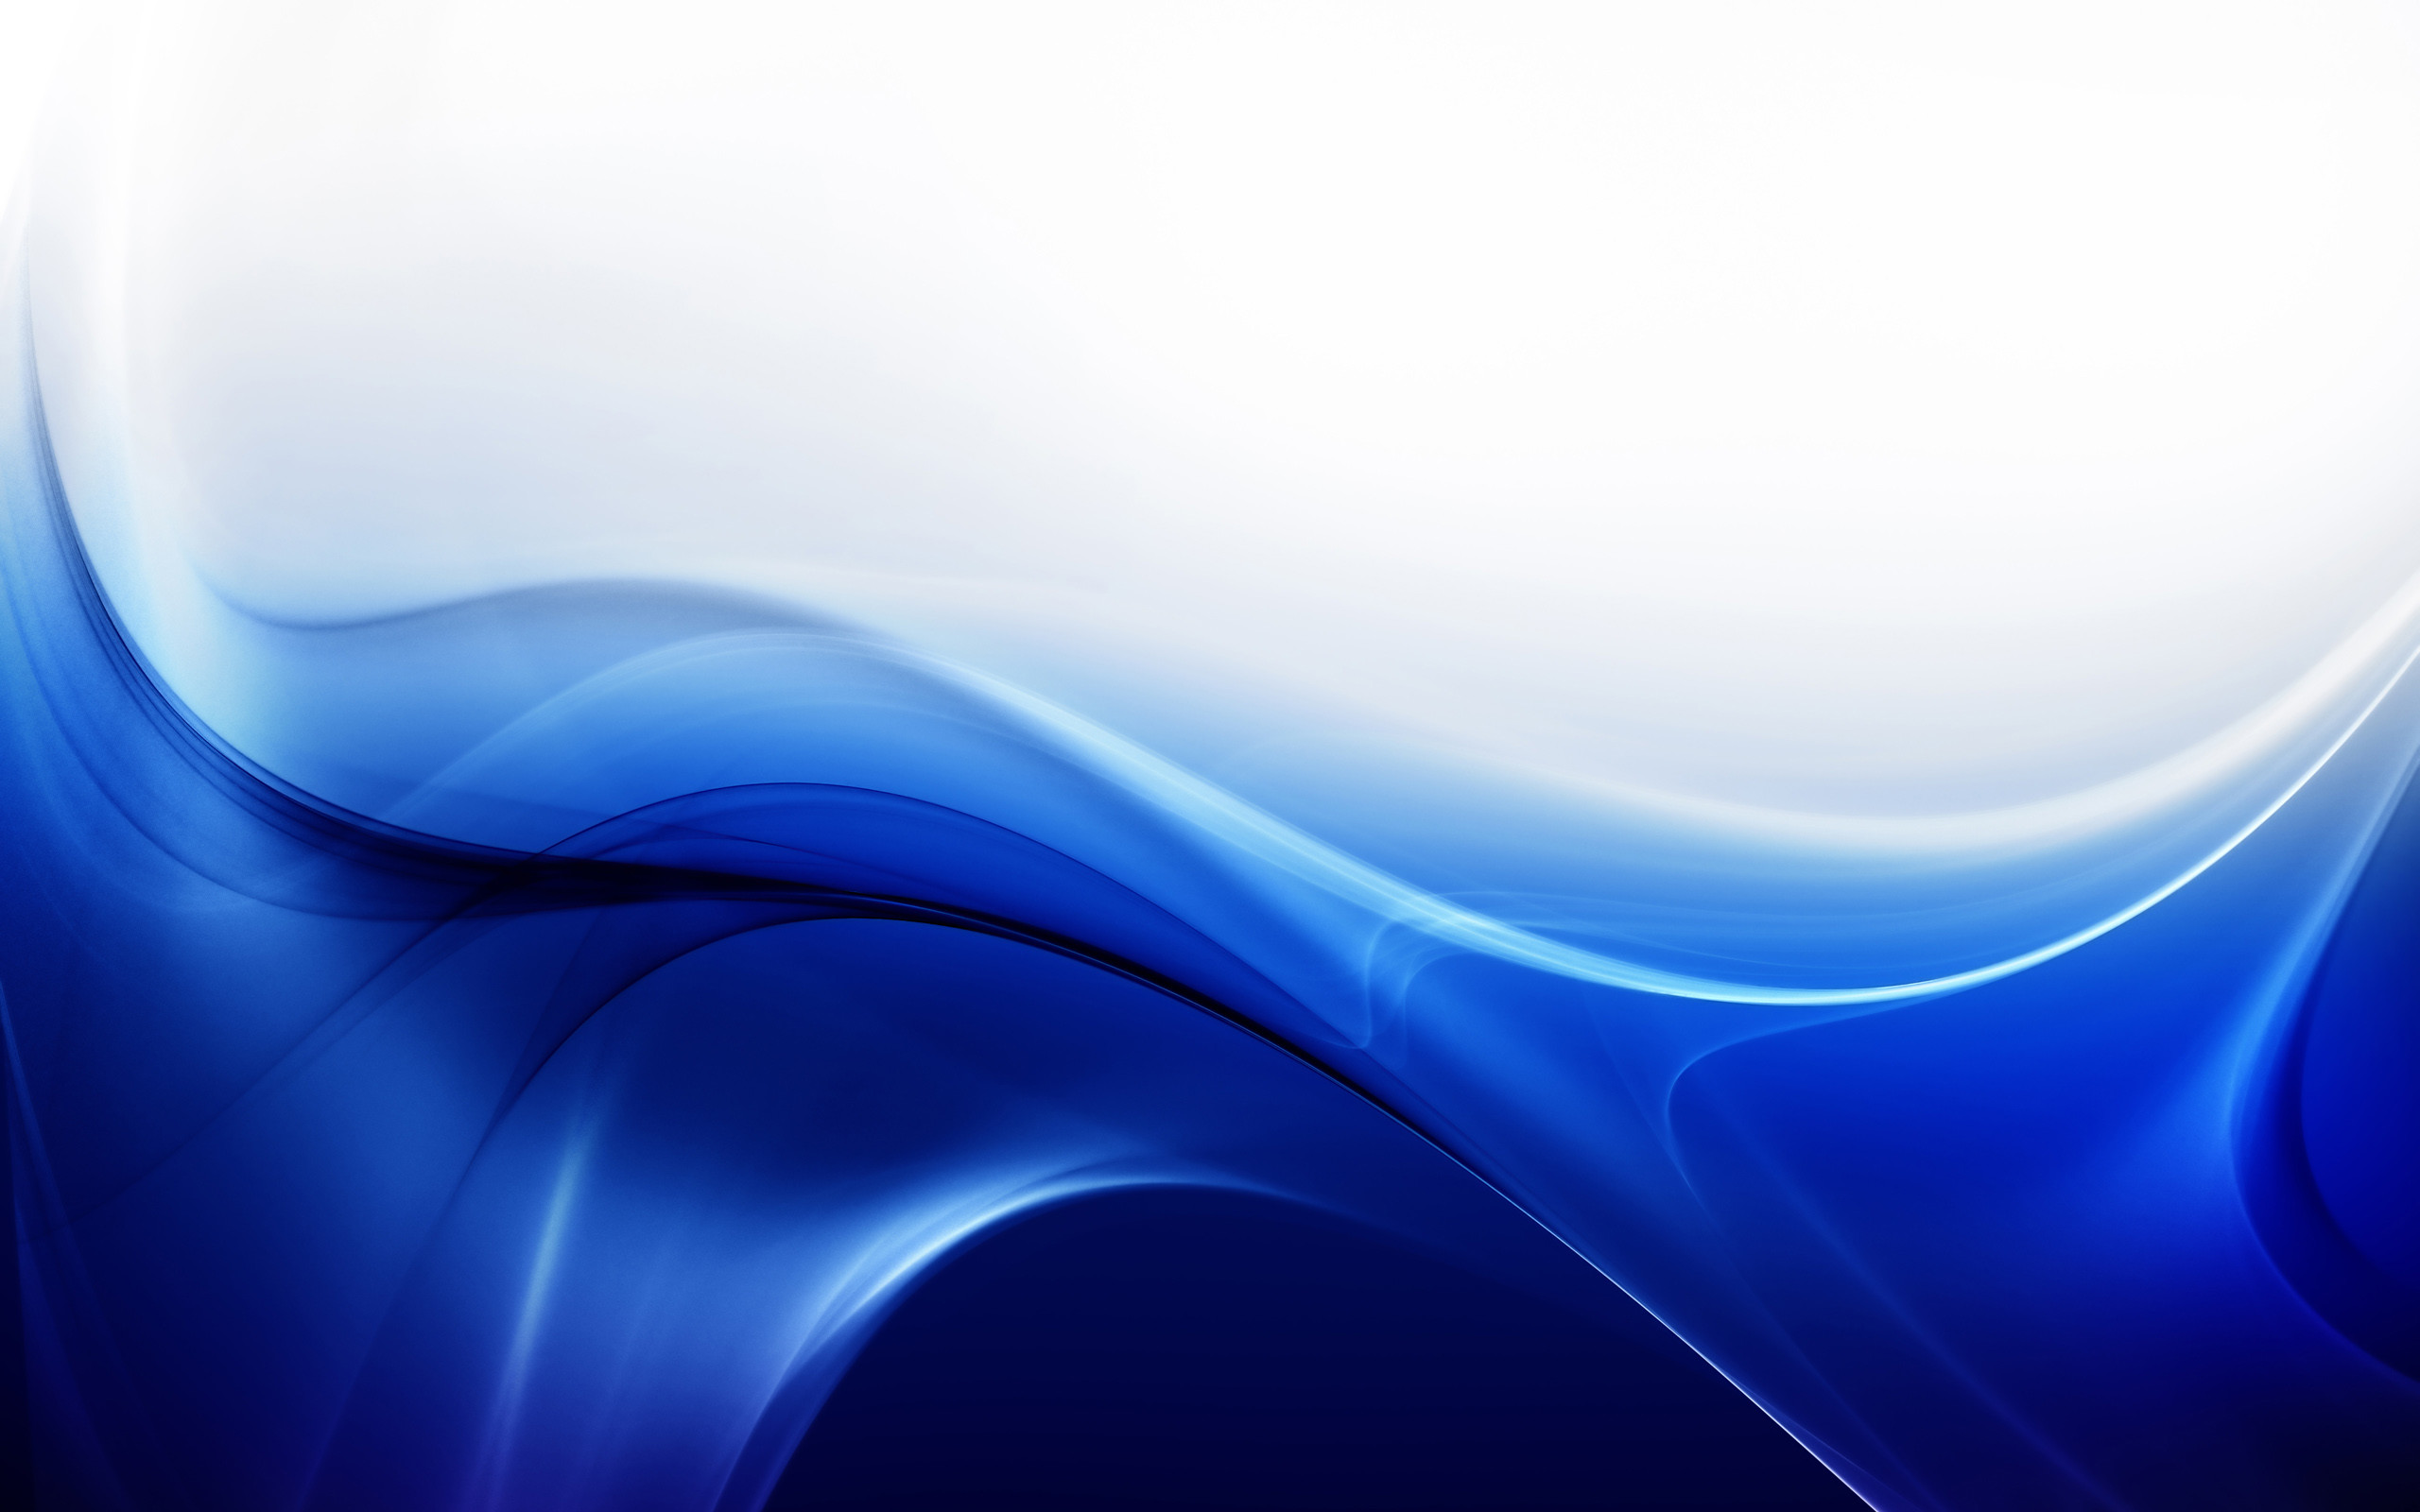 2560x1600 Blue Abstract Wallpaper 10